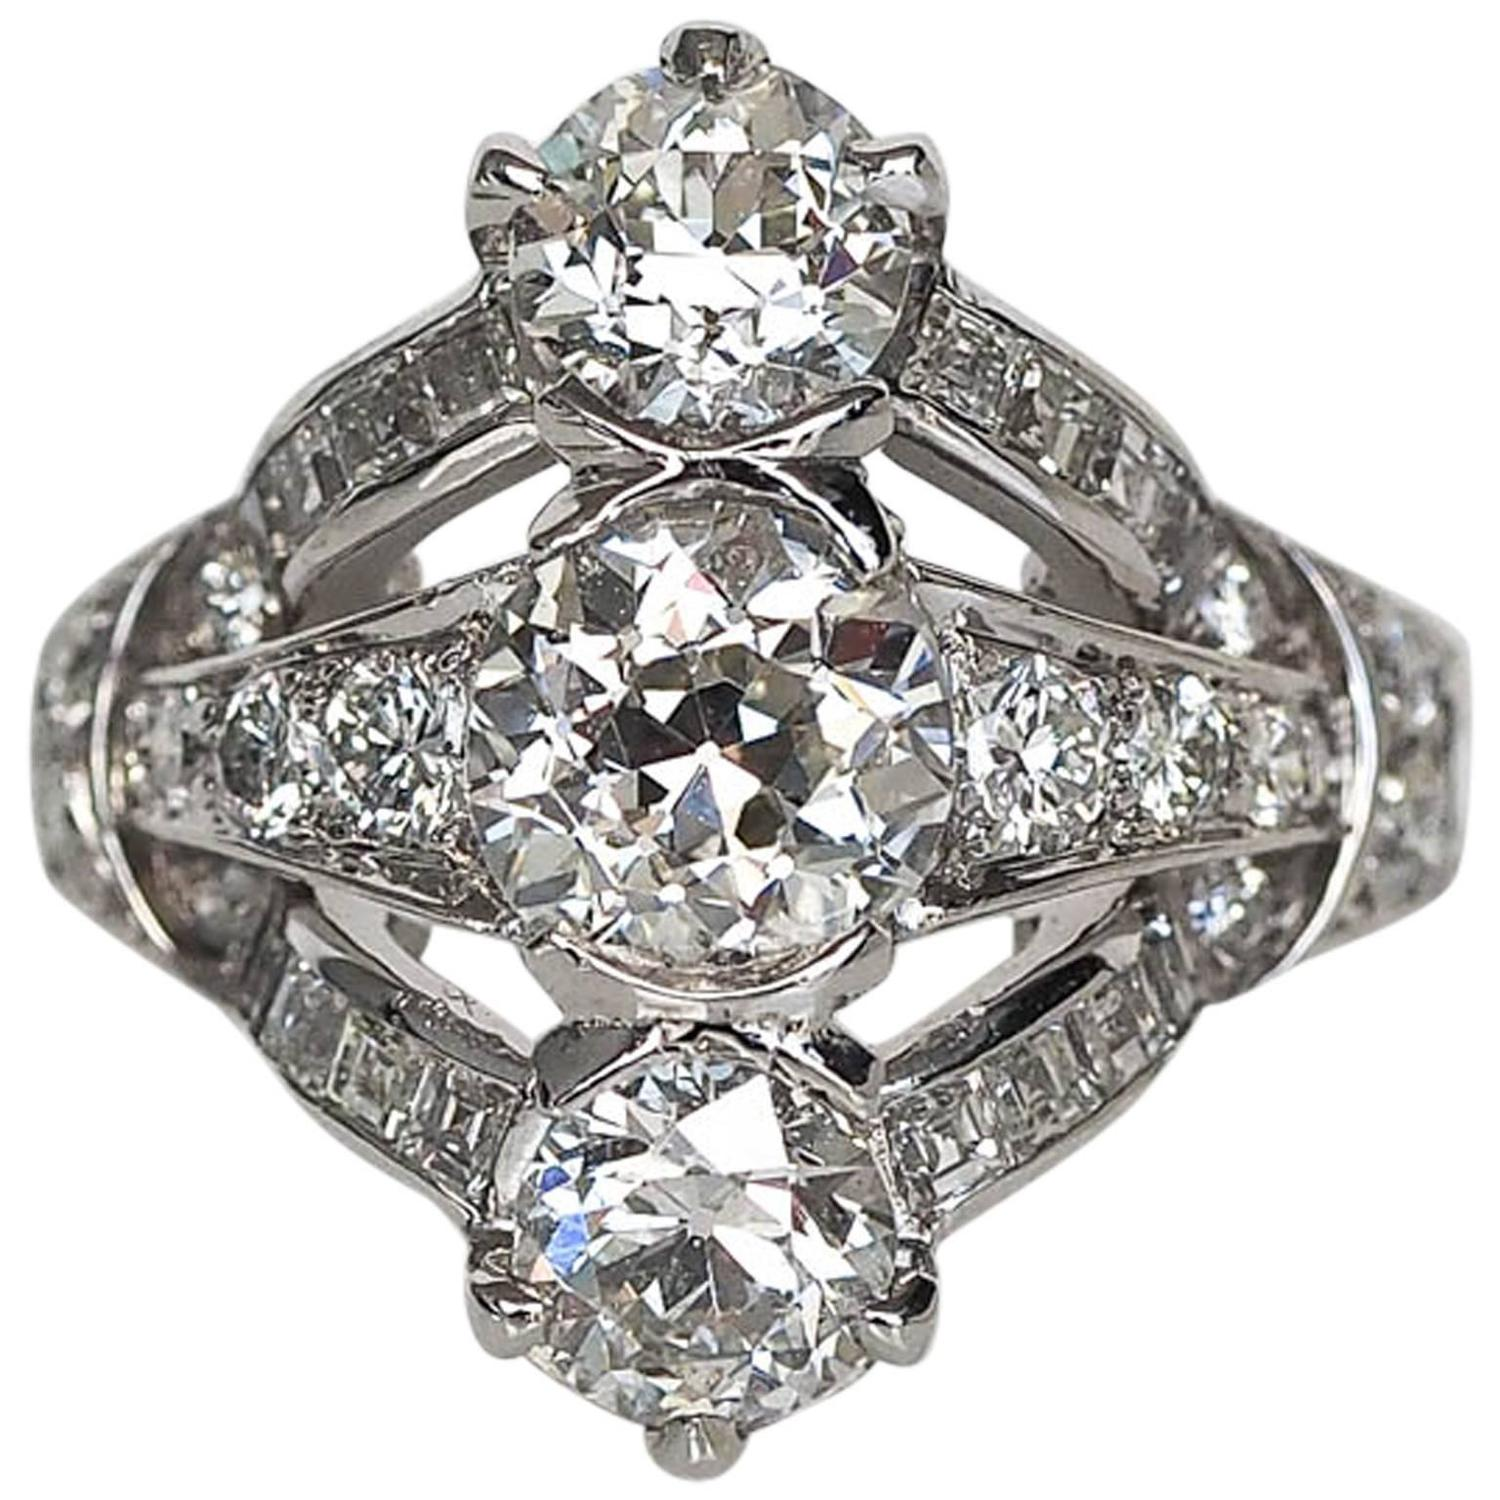 1920s and co deco platinum engagement ring for sale at 1stdibs